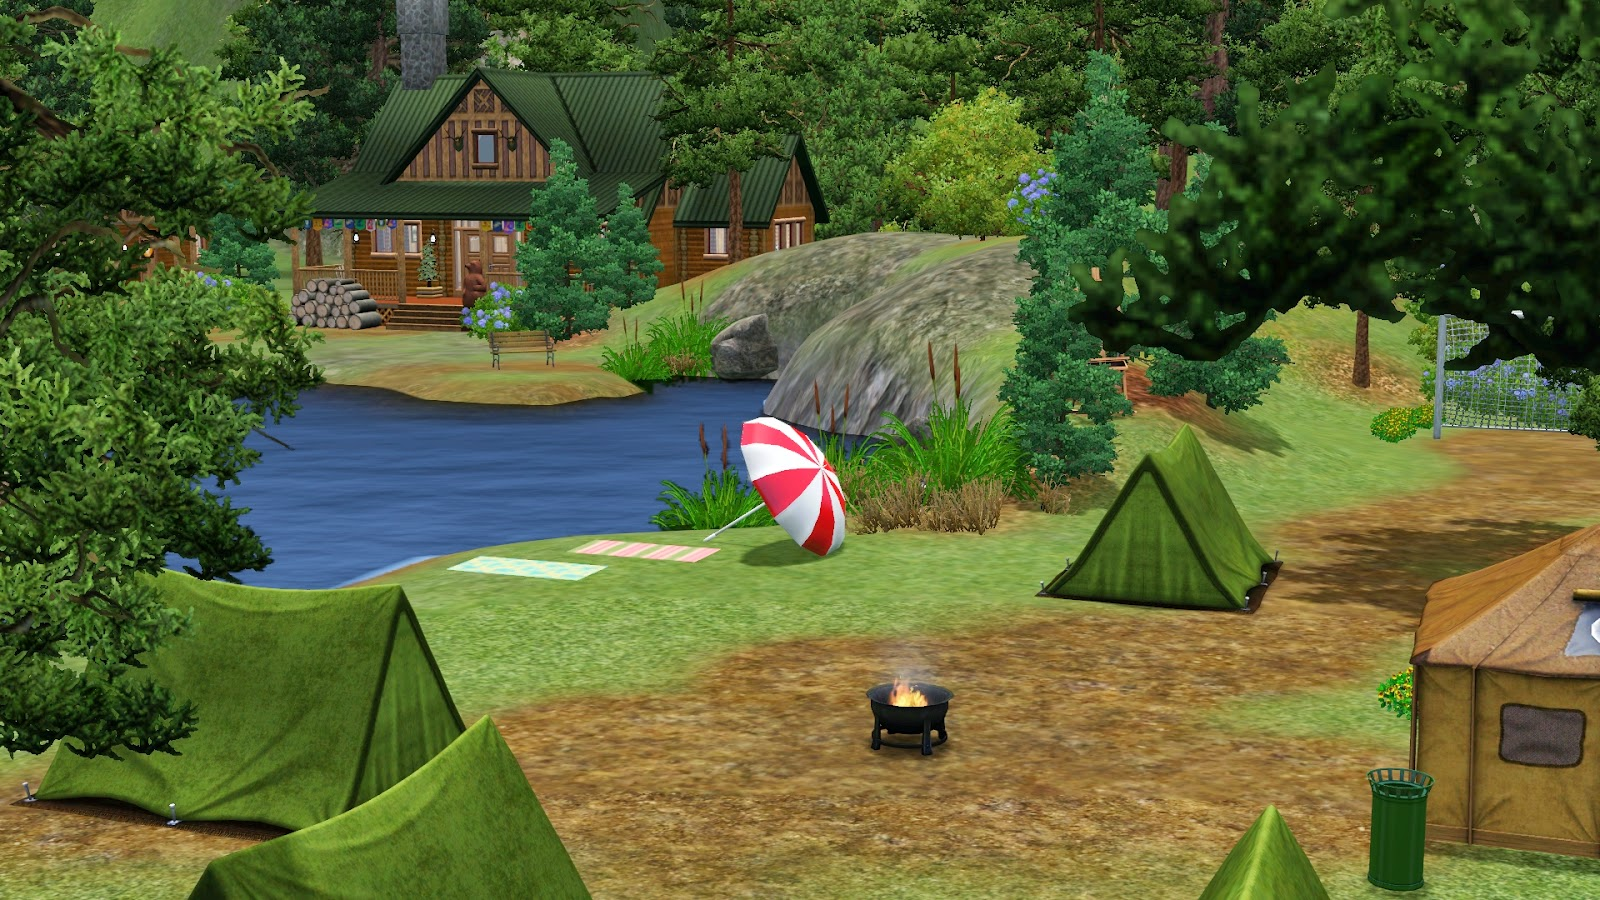 4 Camping Simply Ruthless Send Your Sims To Summer Camp At Camp Plumbob